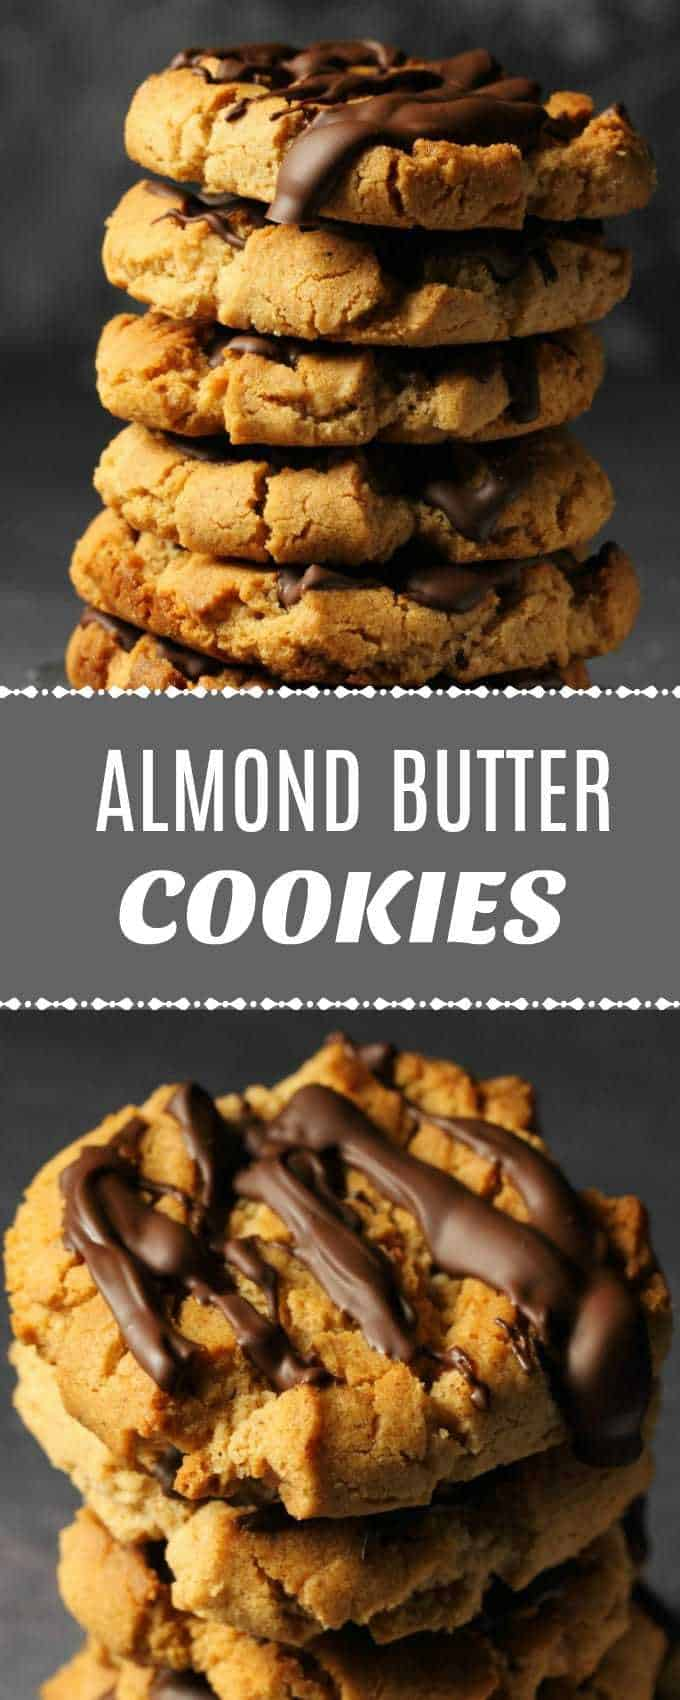 Crunchy vegan almond butter cookies drizzled with vegan chocolate. Perfect blend of flavors in this super easy recipe. Insanely delicious! | lovingitvegan.com